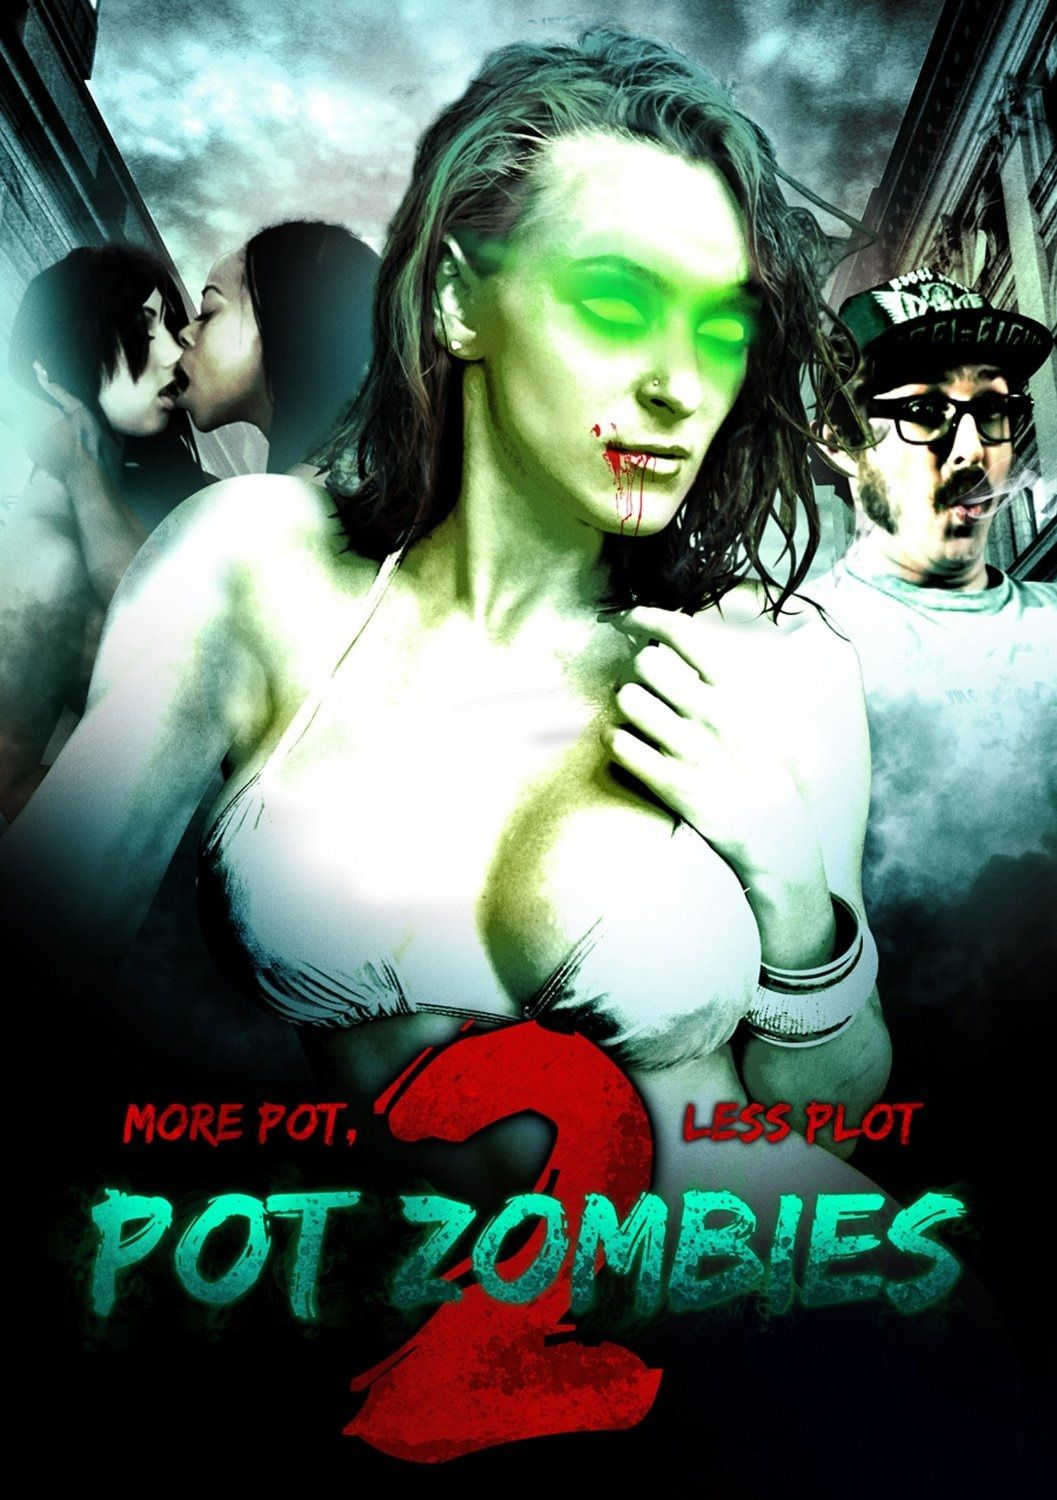 POT ZOMBIES 2 bring leaglization to Oregon